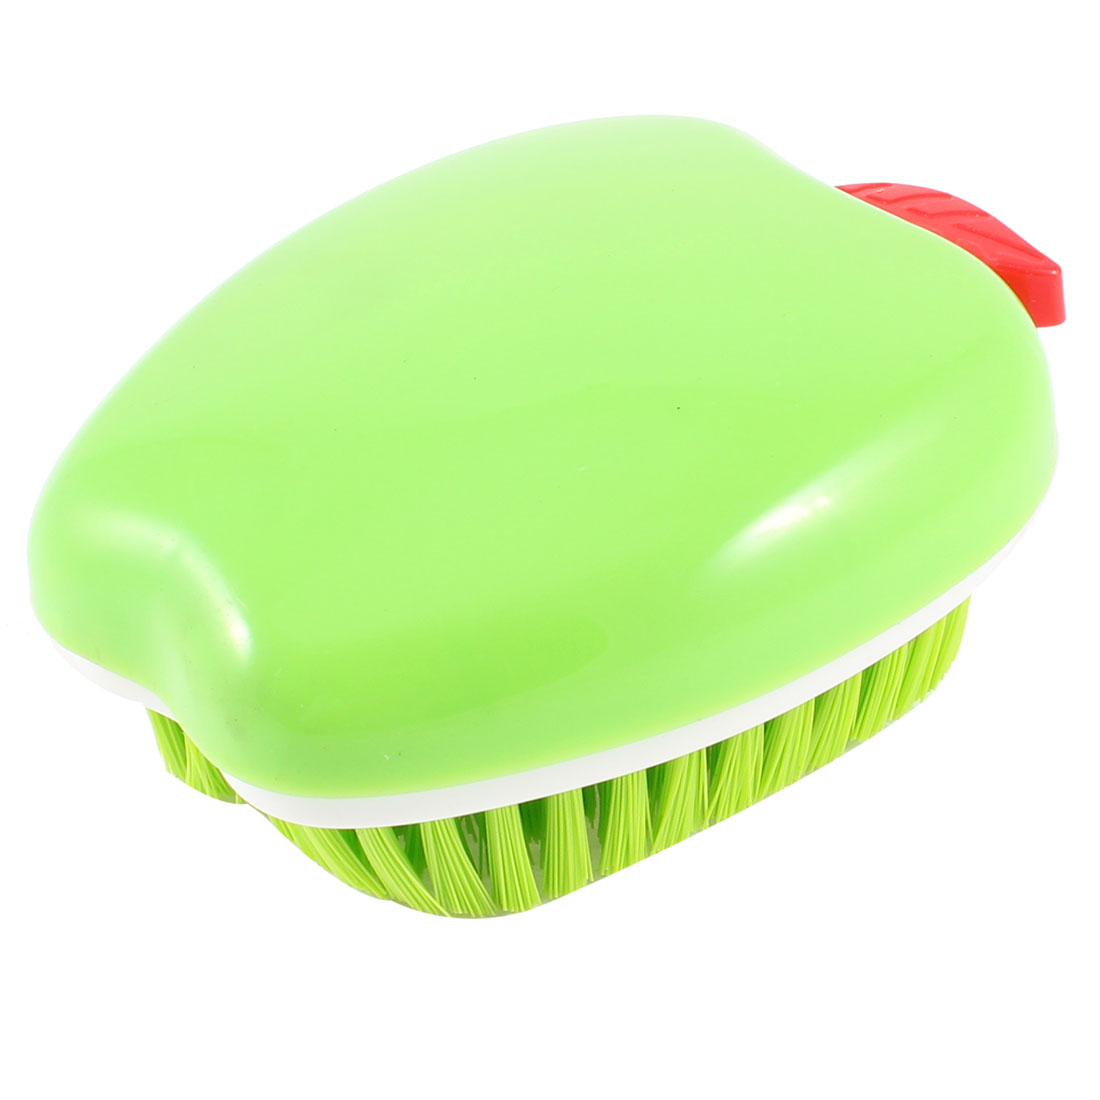 Green Apple Design Plastic Bristles Clothes Floor Washing Scrubbing Brush